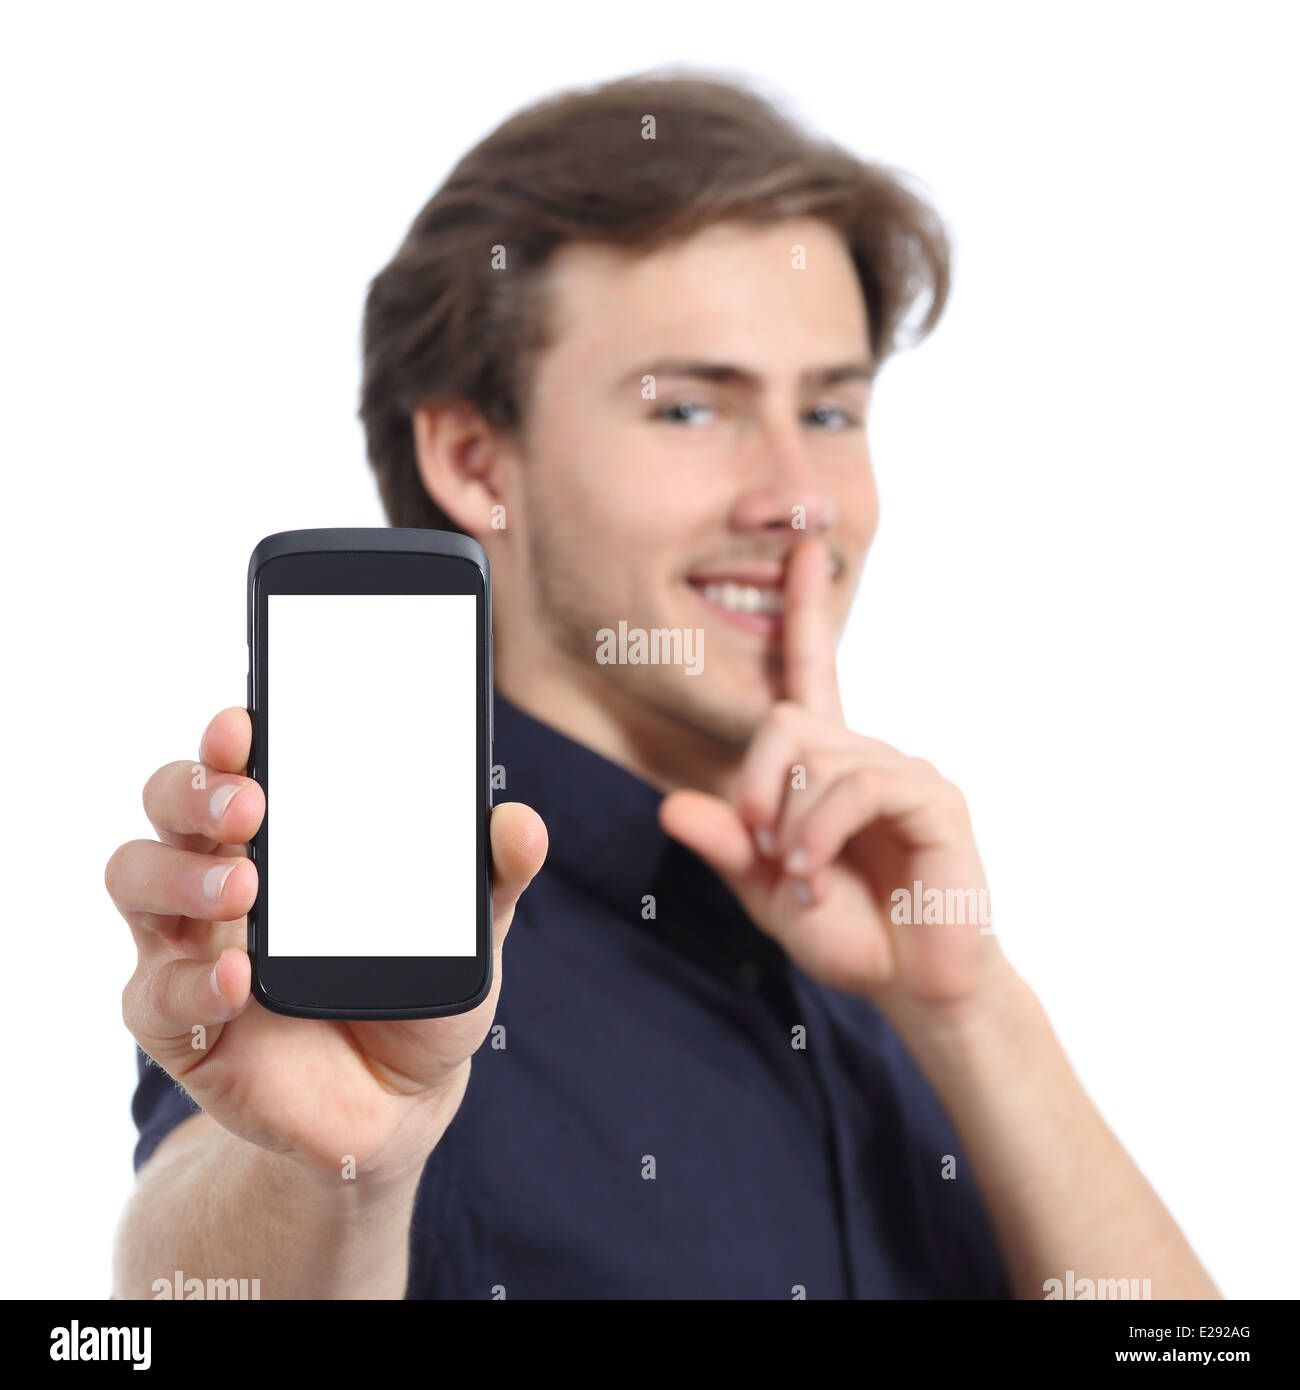 Man showing mobile phone screen and asking for silence isolated on a white background - Stock Image